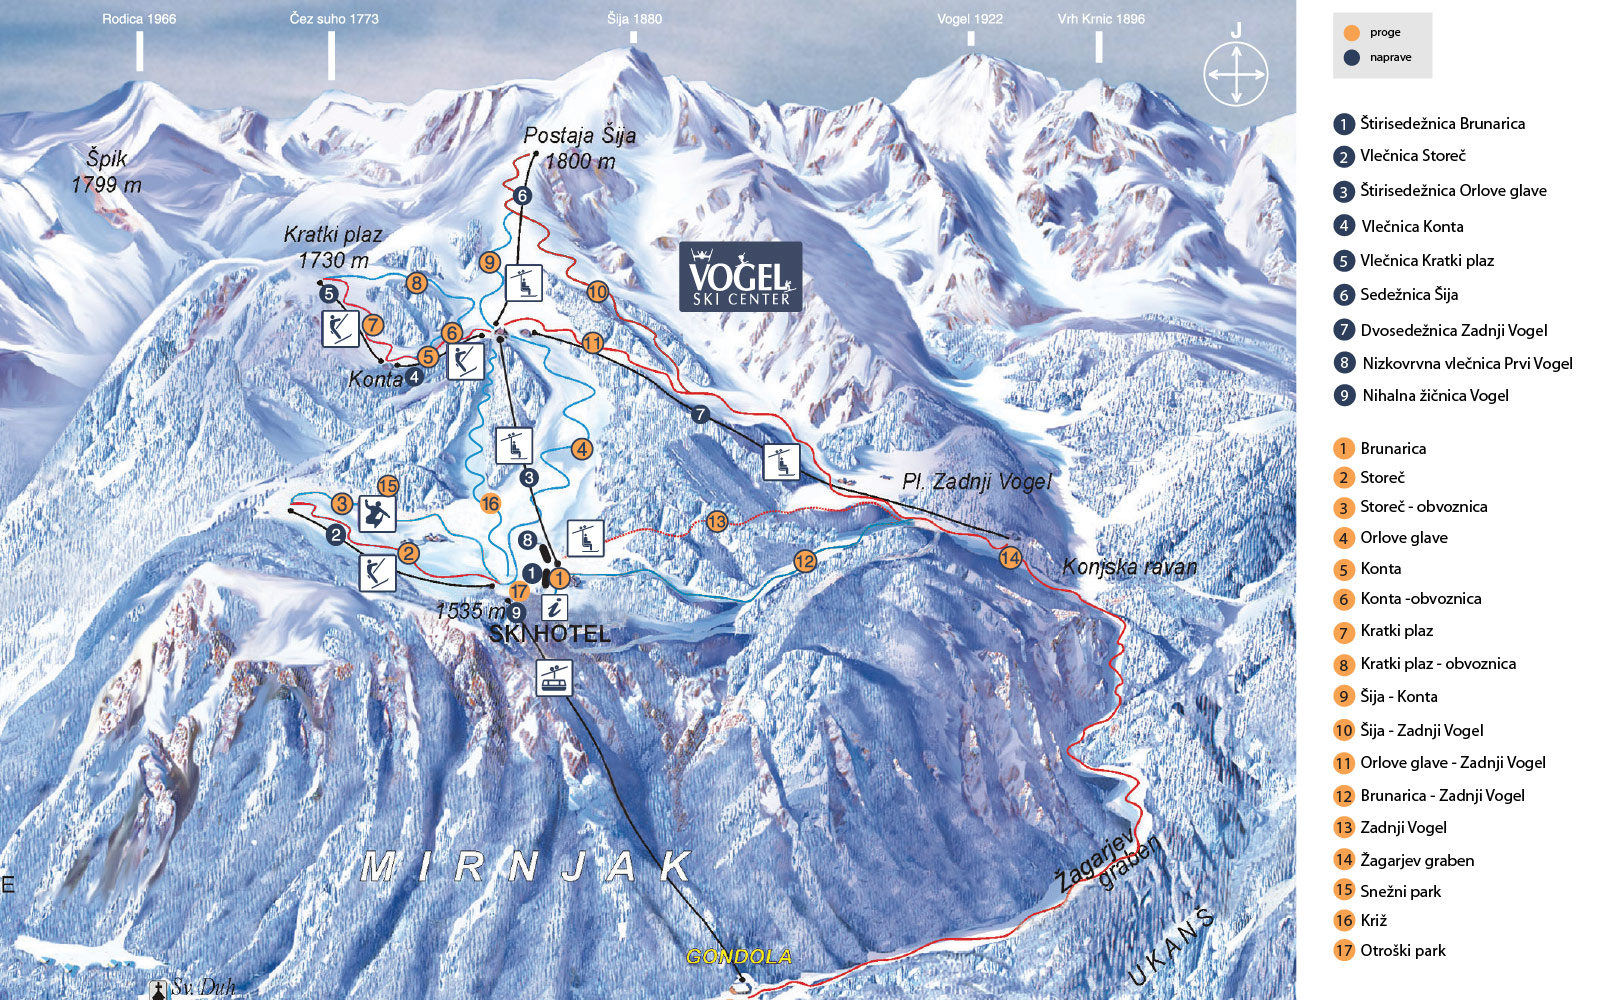 General Map Of Ski Lifts And Slopes